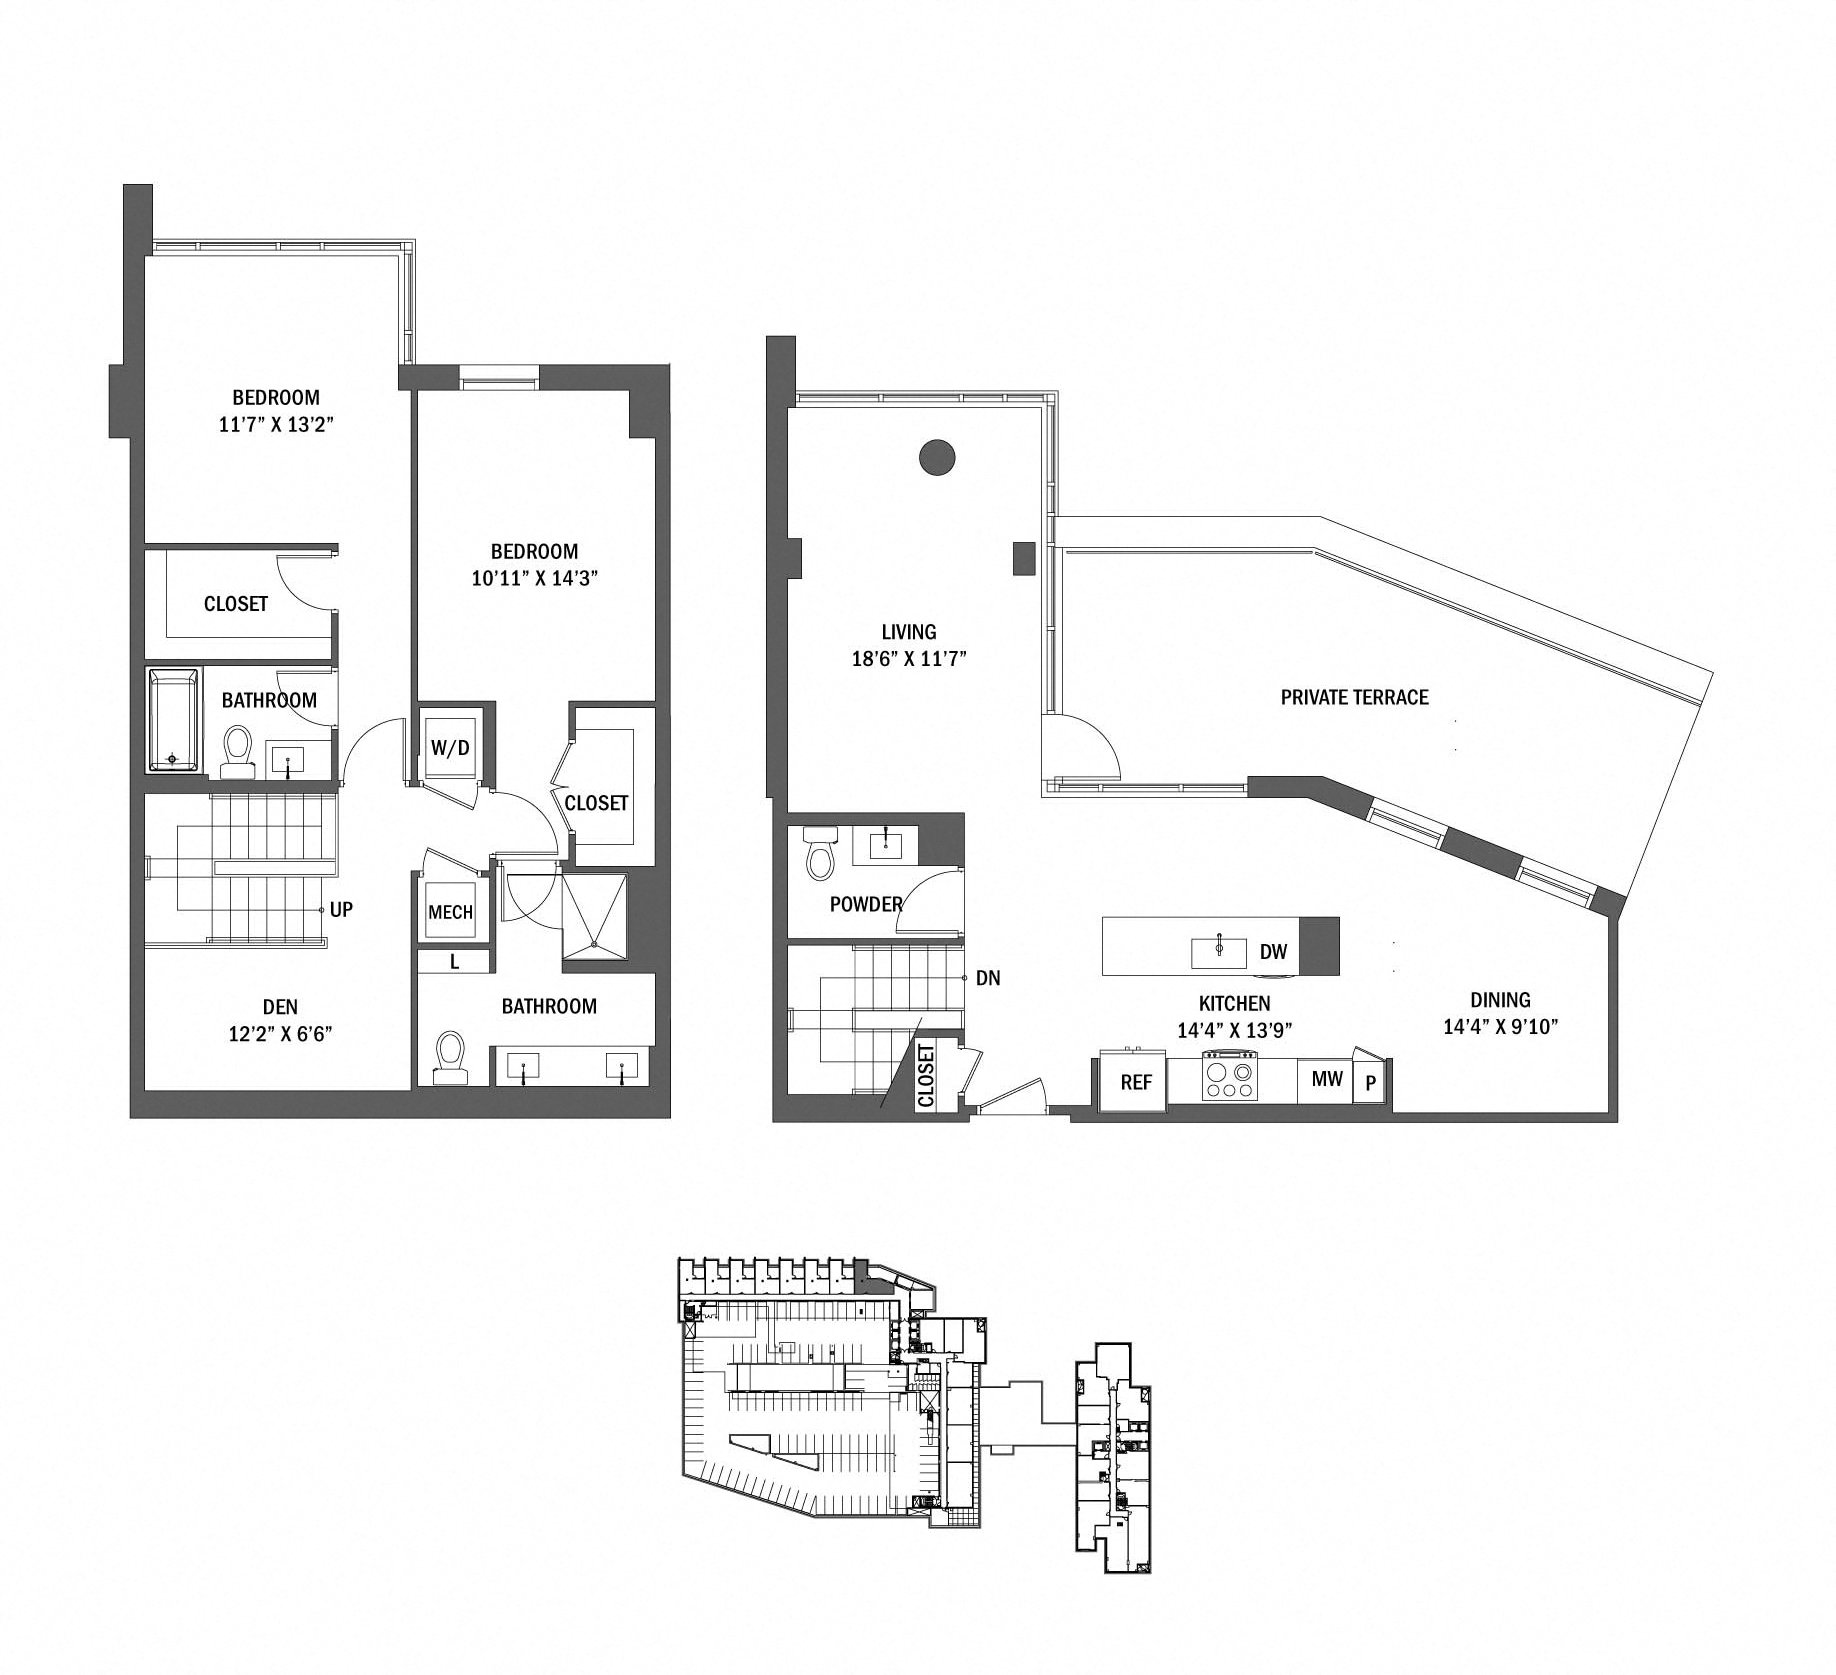 P0625338 n08 php 2 floorplan